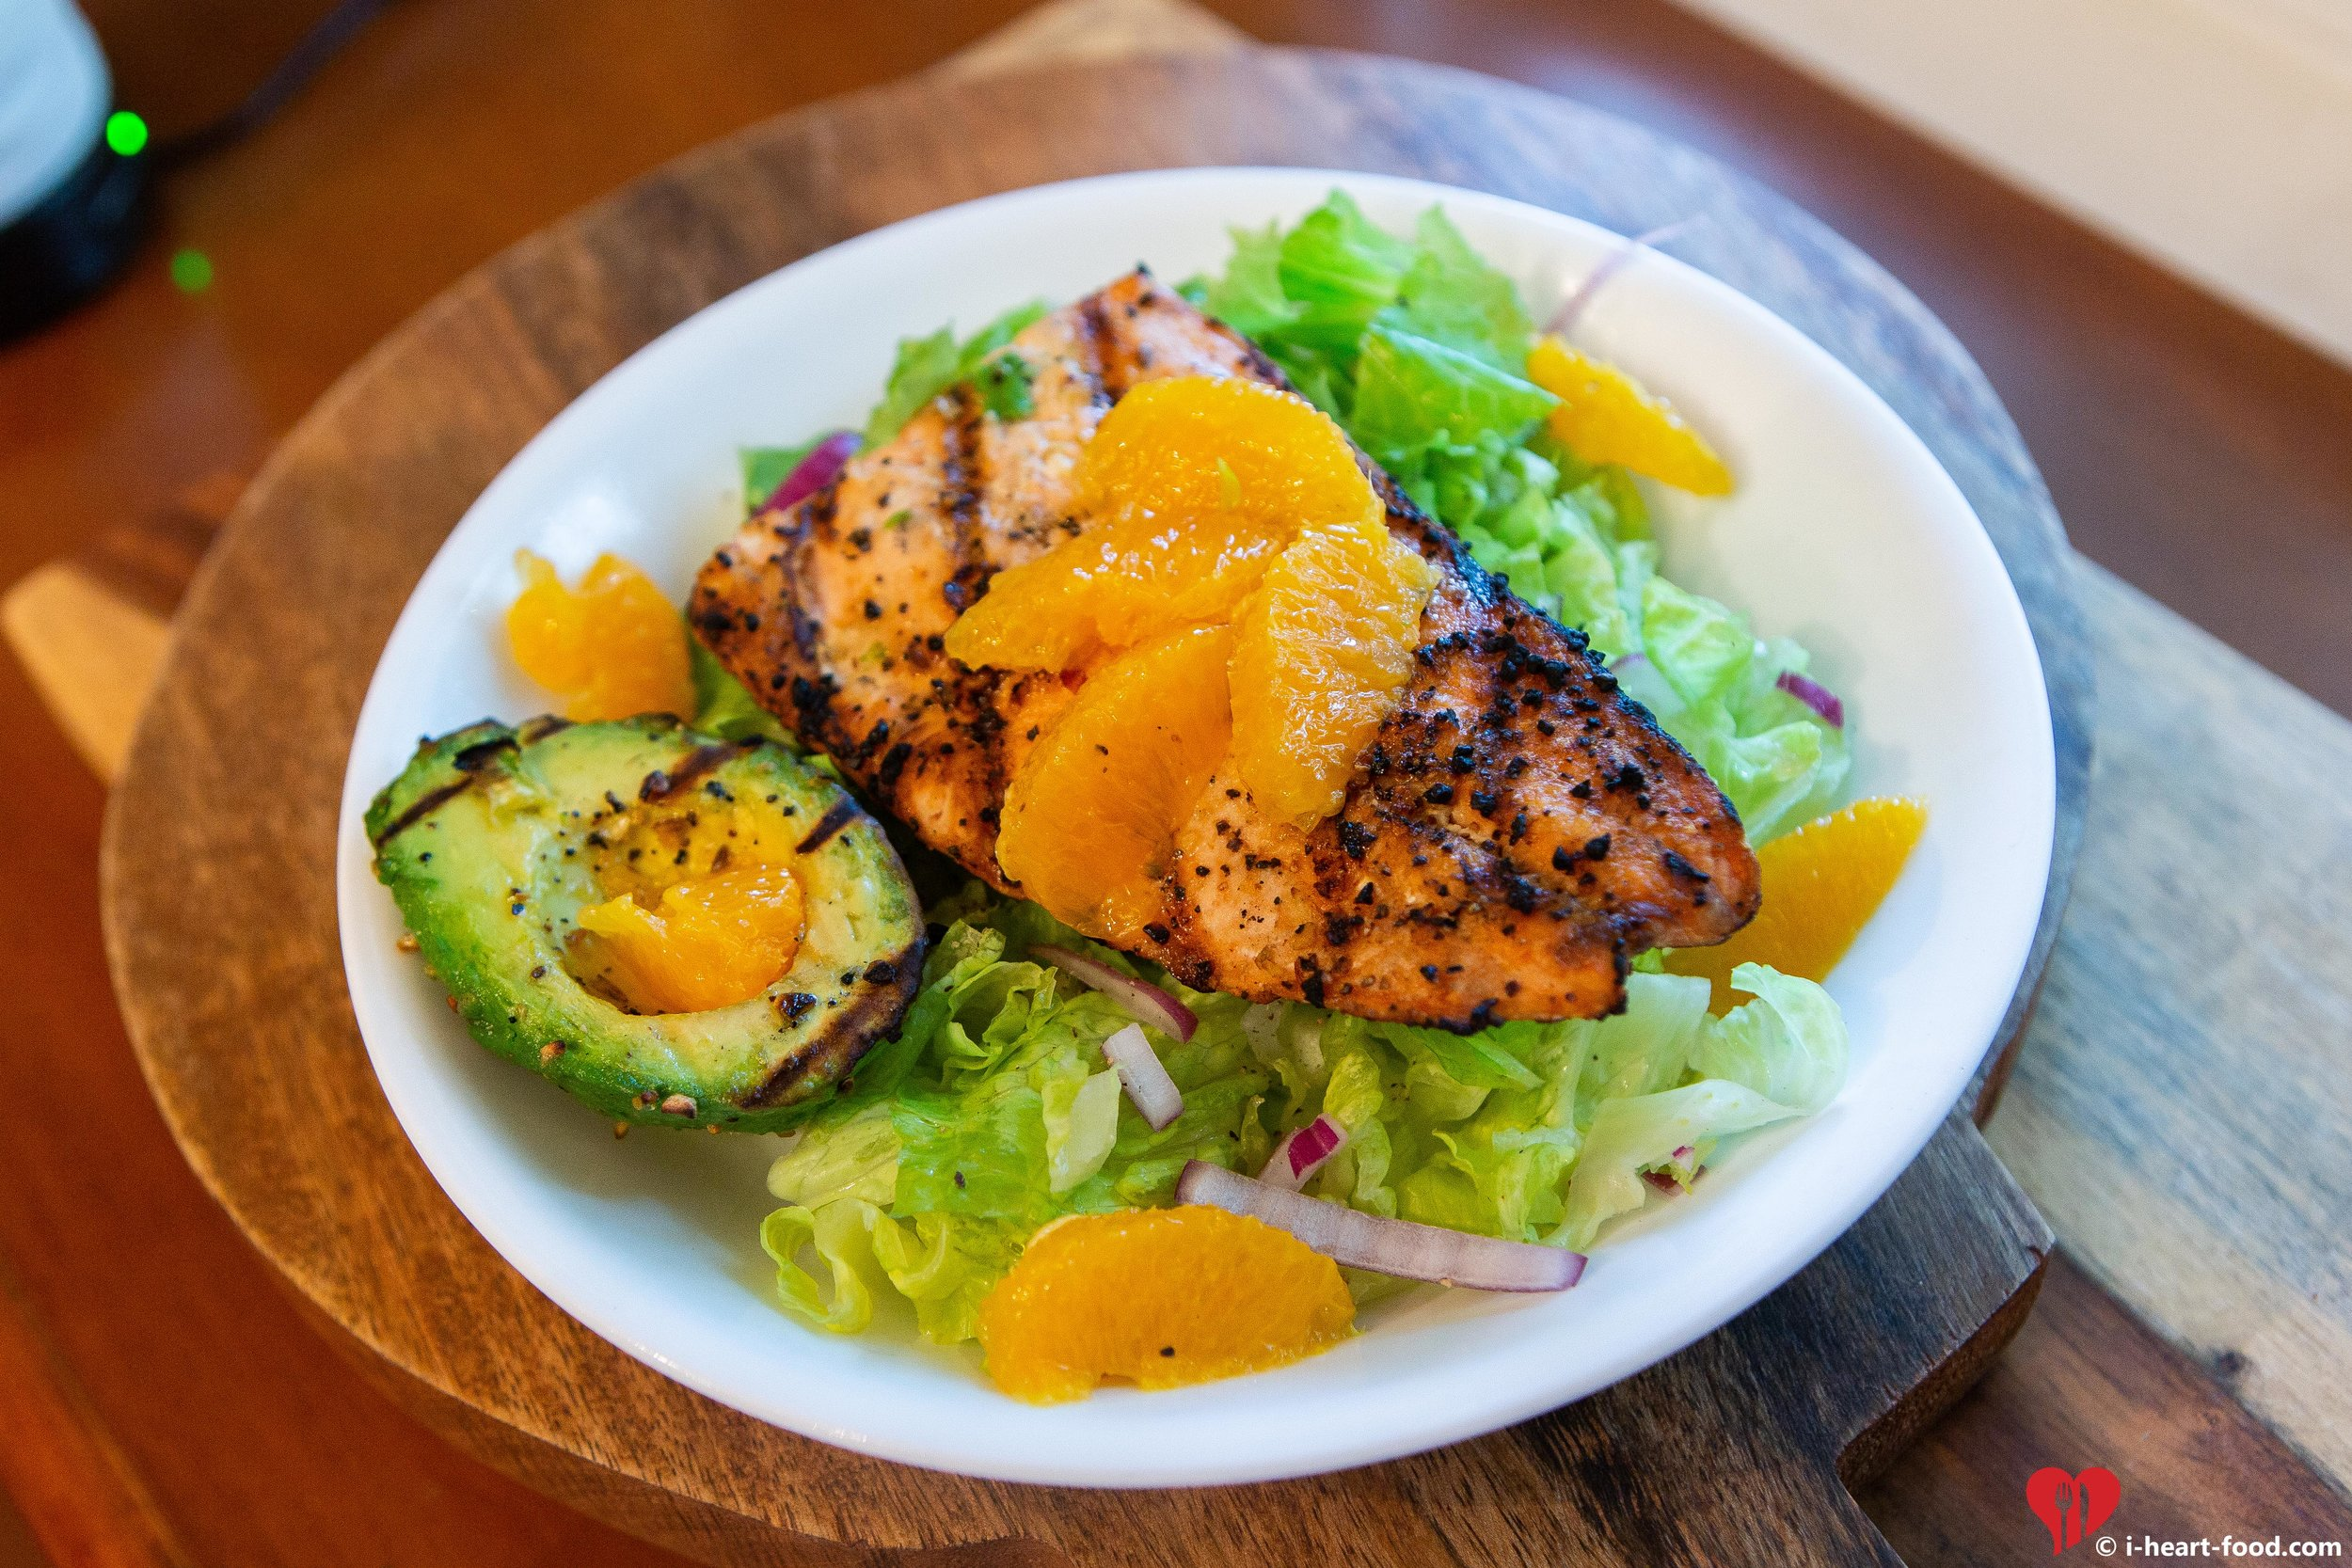 Avocado and Citrus Salad with Grilled Salmon